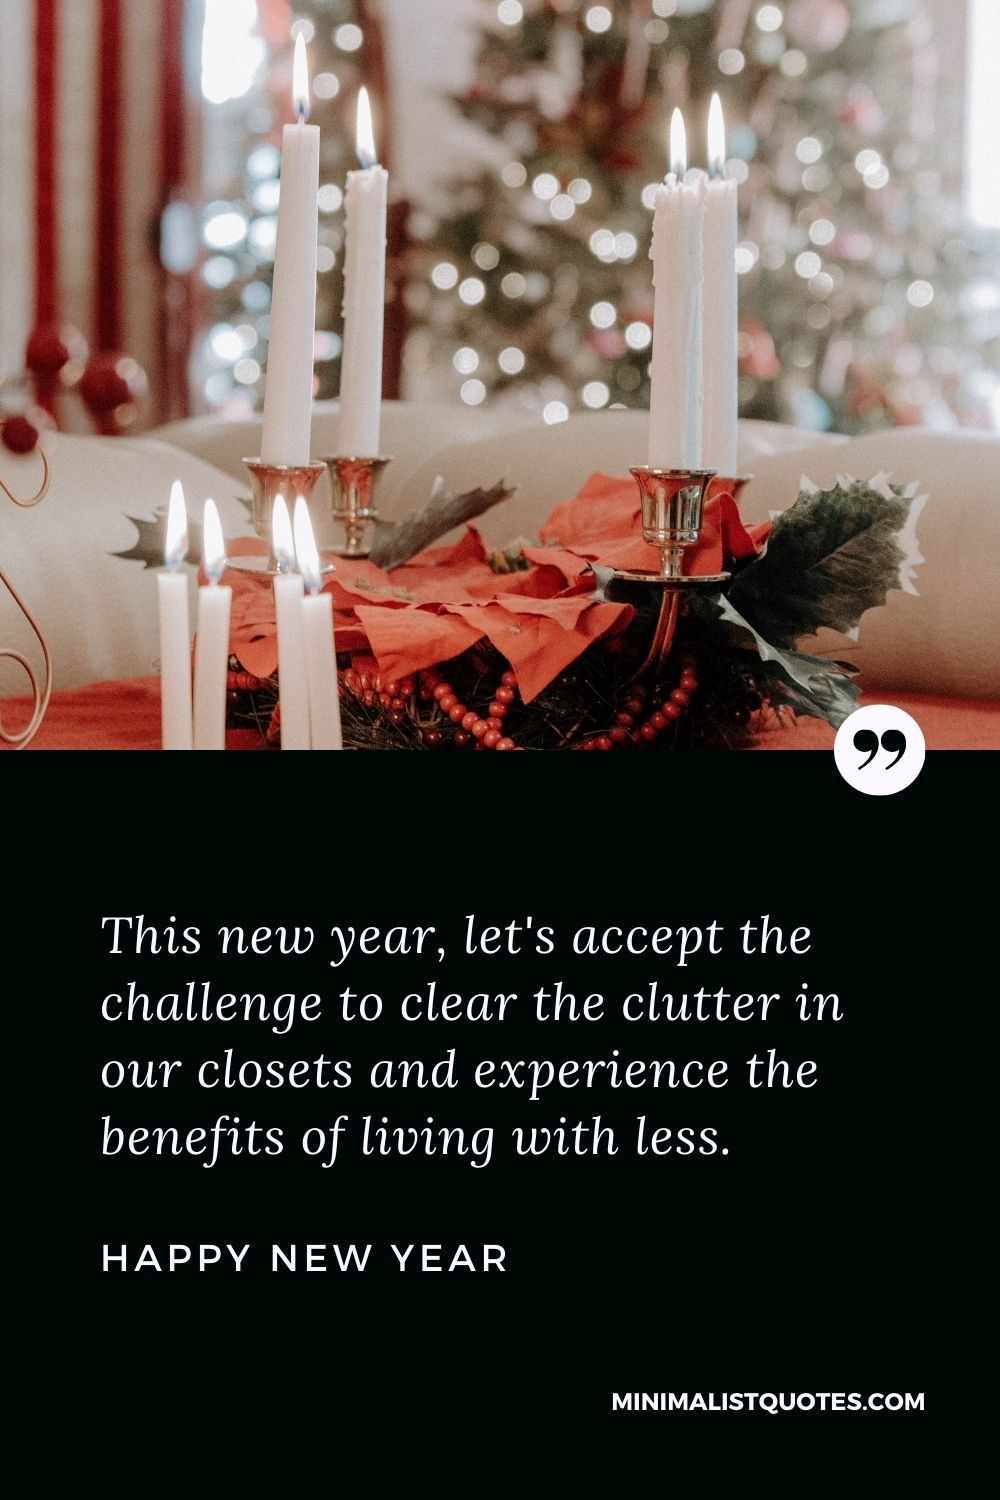 New Year Wish & Message With HD Image: This new year, let's accept the challenge to clear the clutter in our closets and experience the benefits of living with less. Happy New Year!